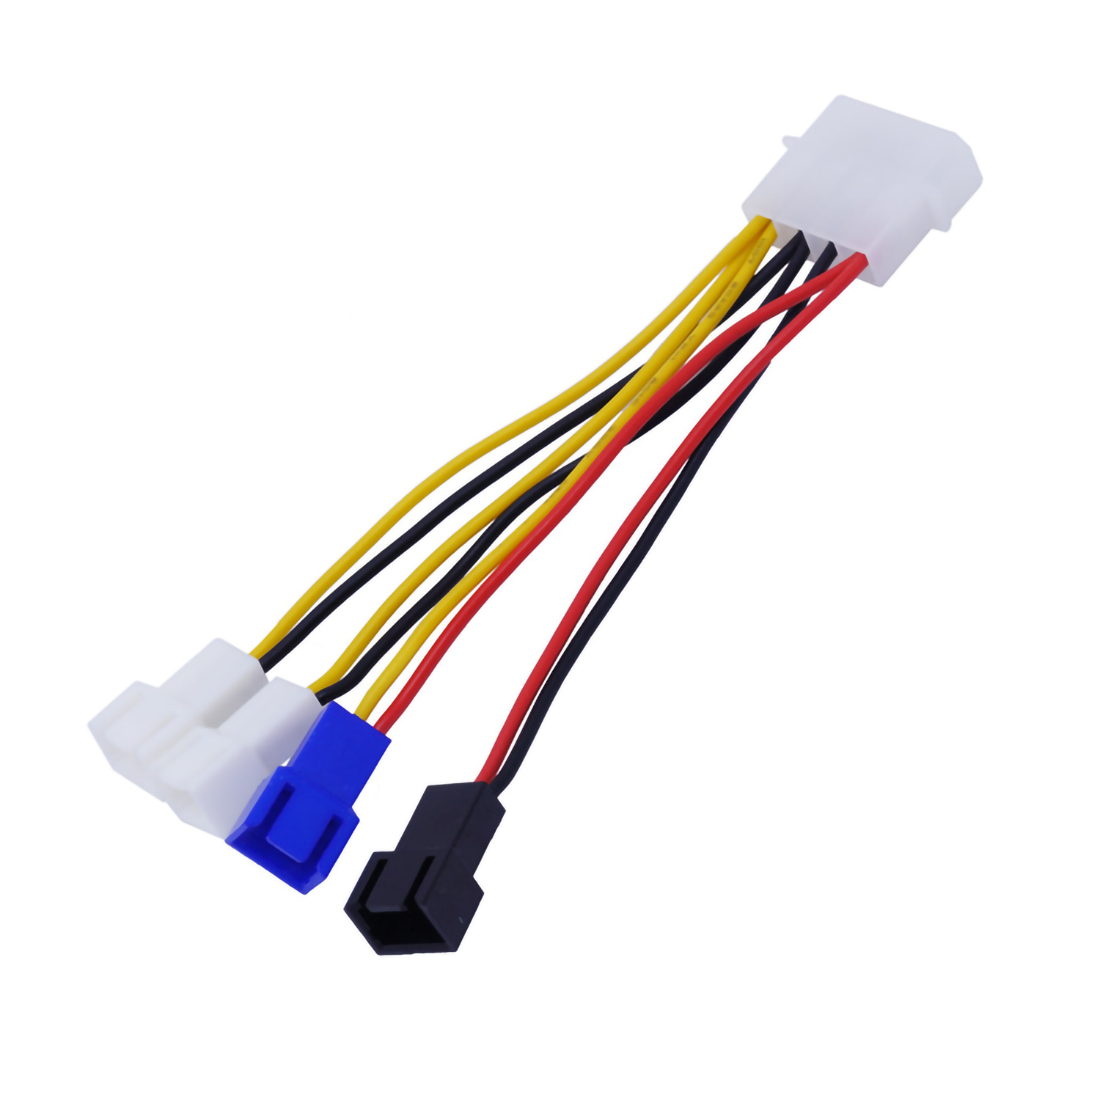 XT-XINTE 1PC 4 Pin Molex to 3 Pin Fan Power Cable Adapter Connector 12V*2  7v 5v Computer Cooling Fan Cables for CPU PC Case 12 5cm